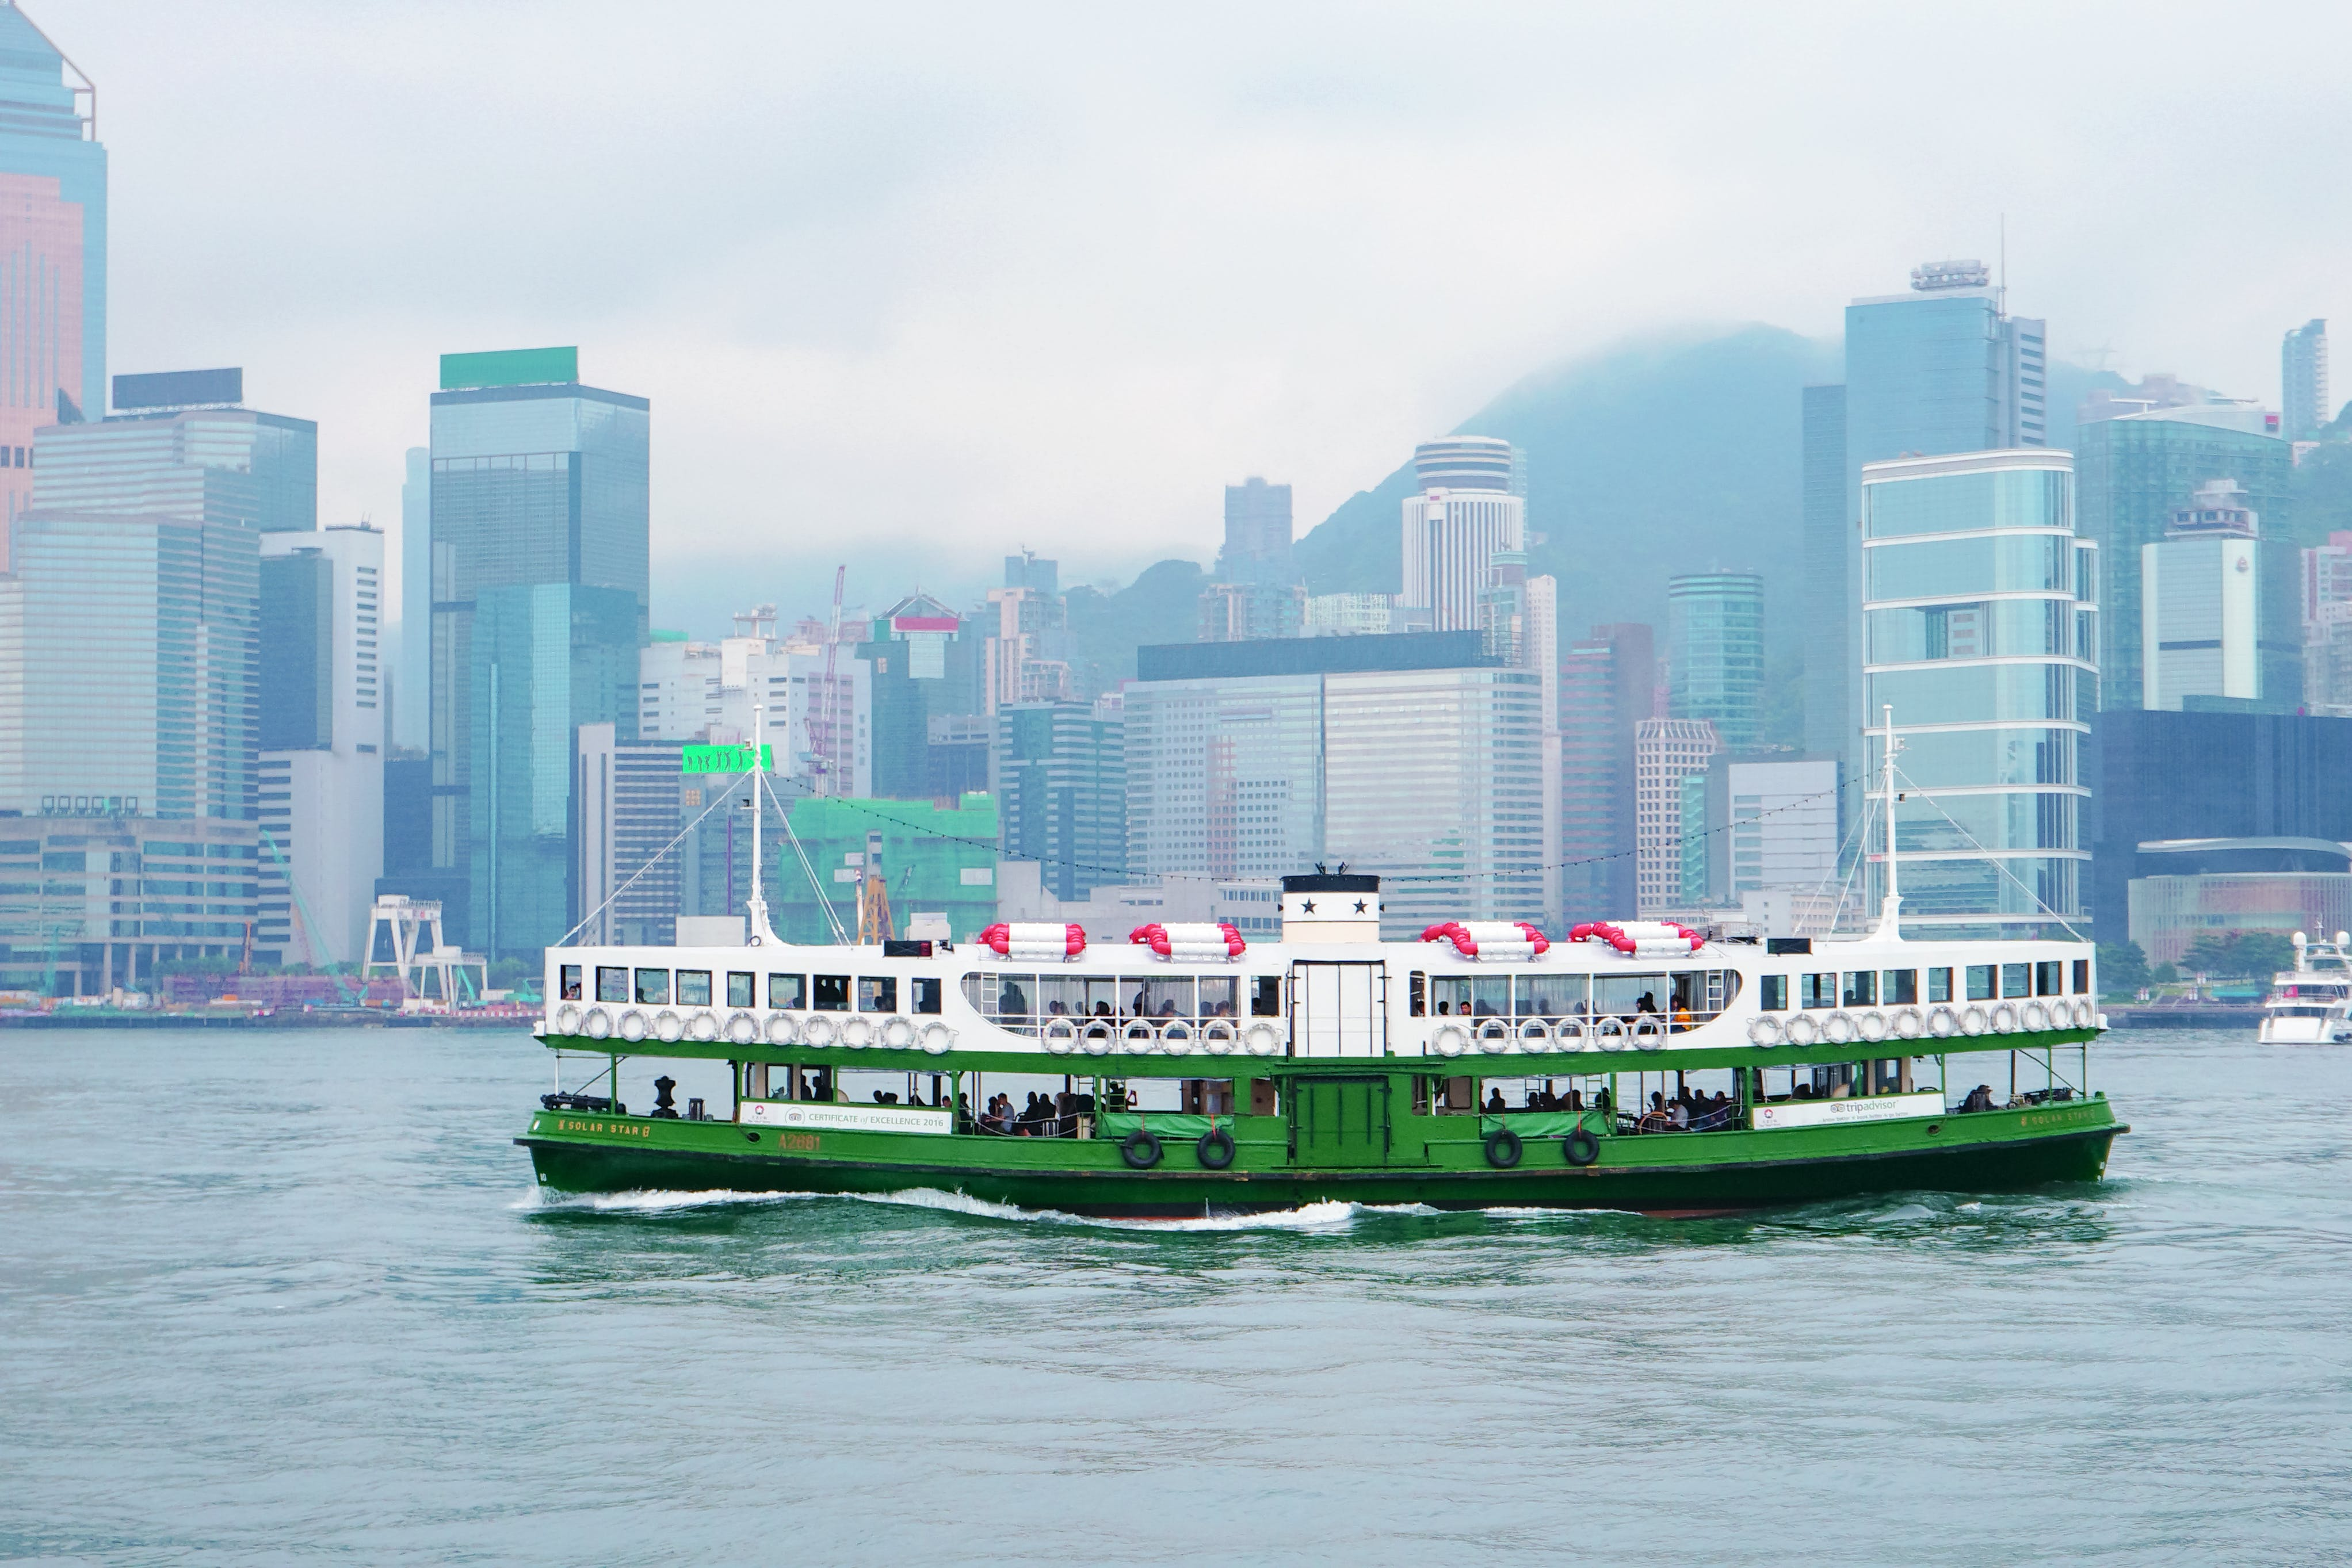 Free stock photo of boat, buildings, city, ferry